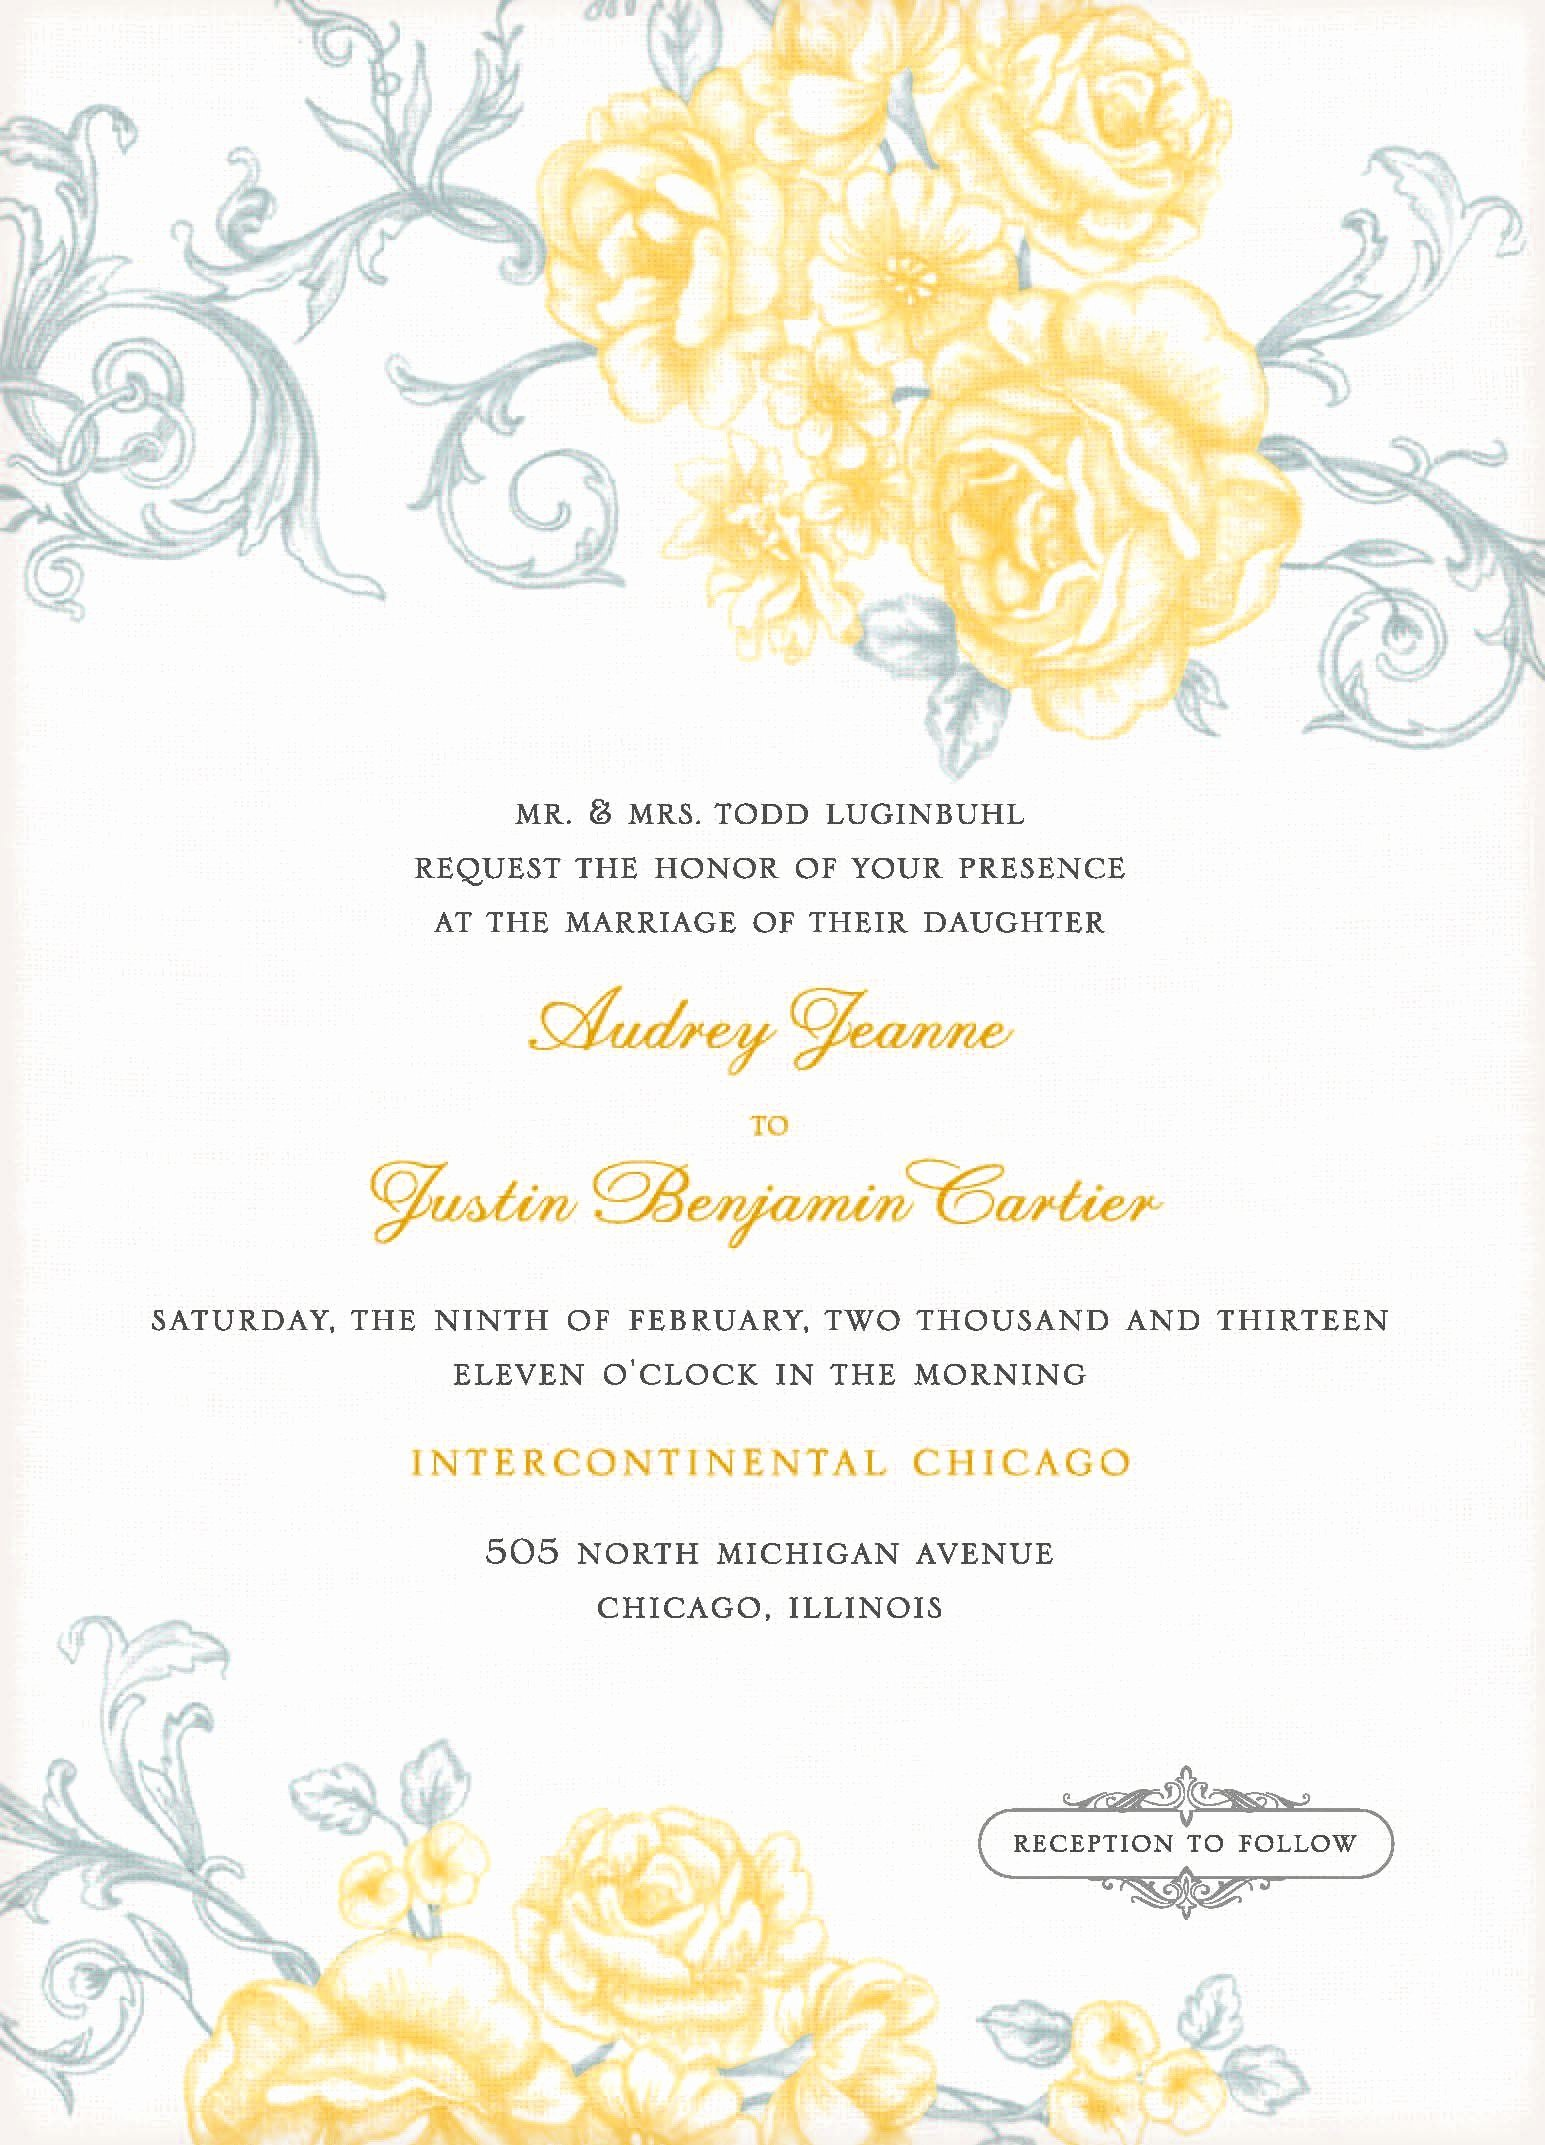 Word Template for Invitations Beautiful Word Invitation Template Word Invitation Template 4 Per